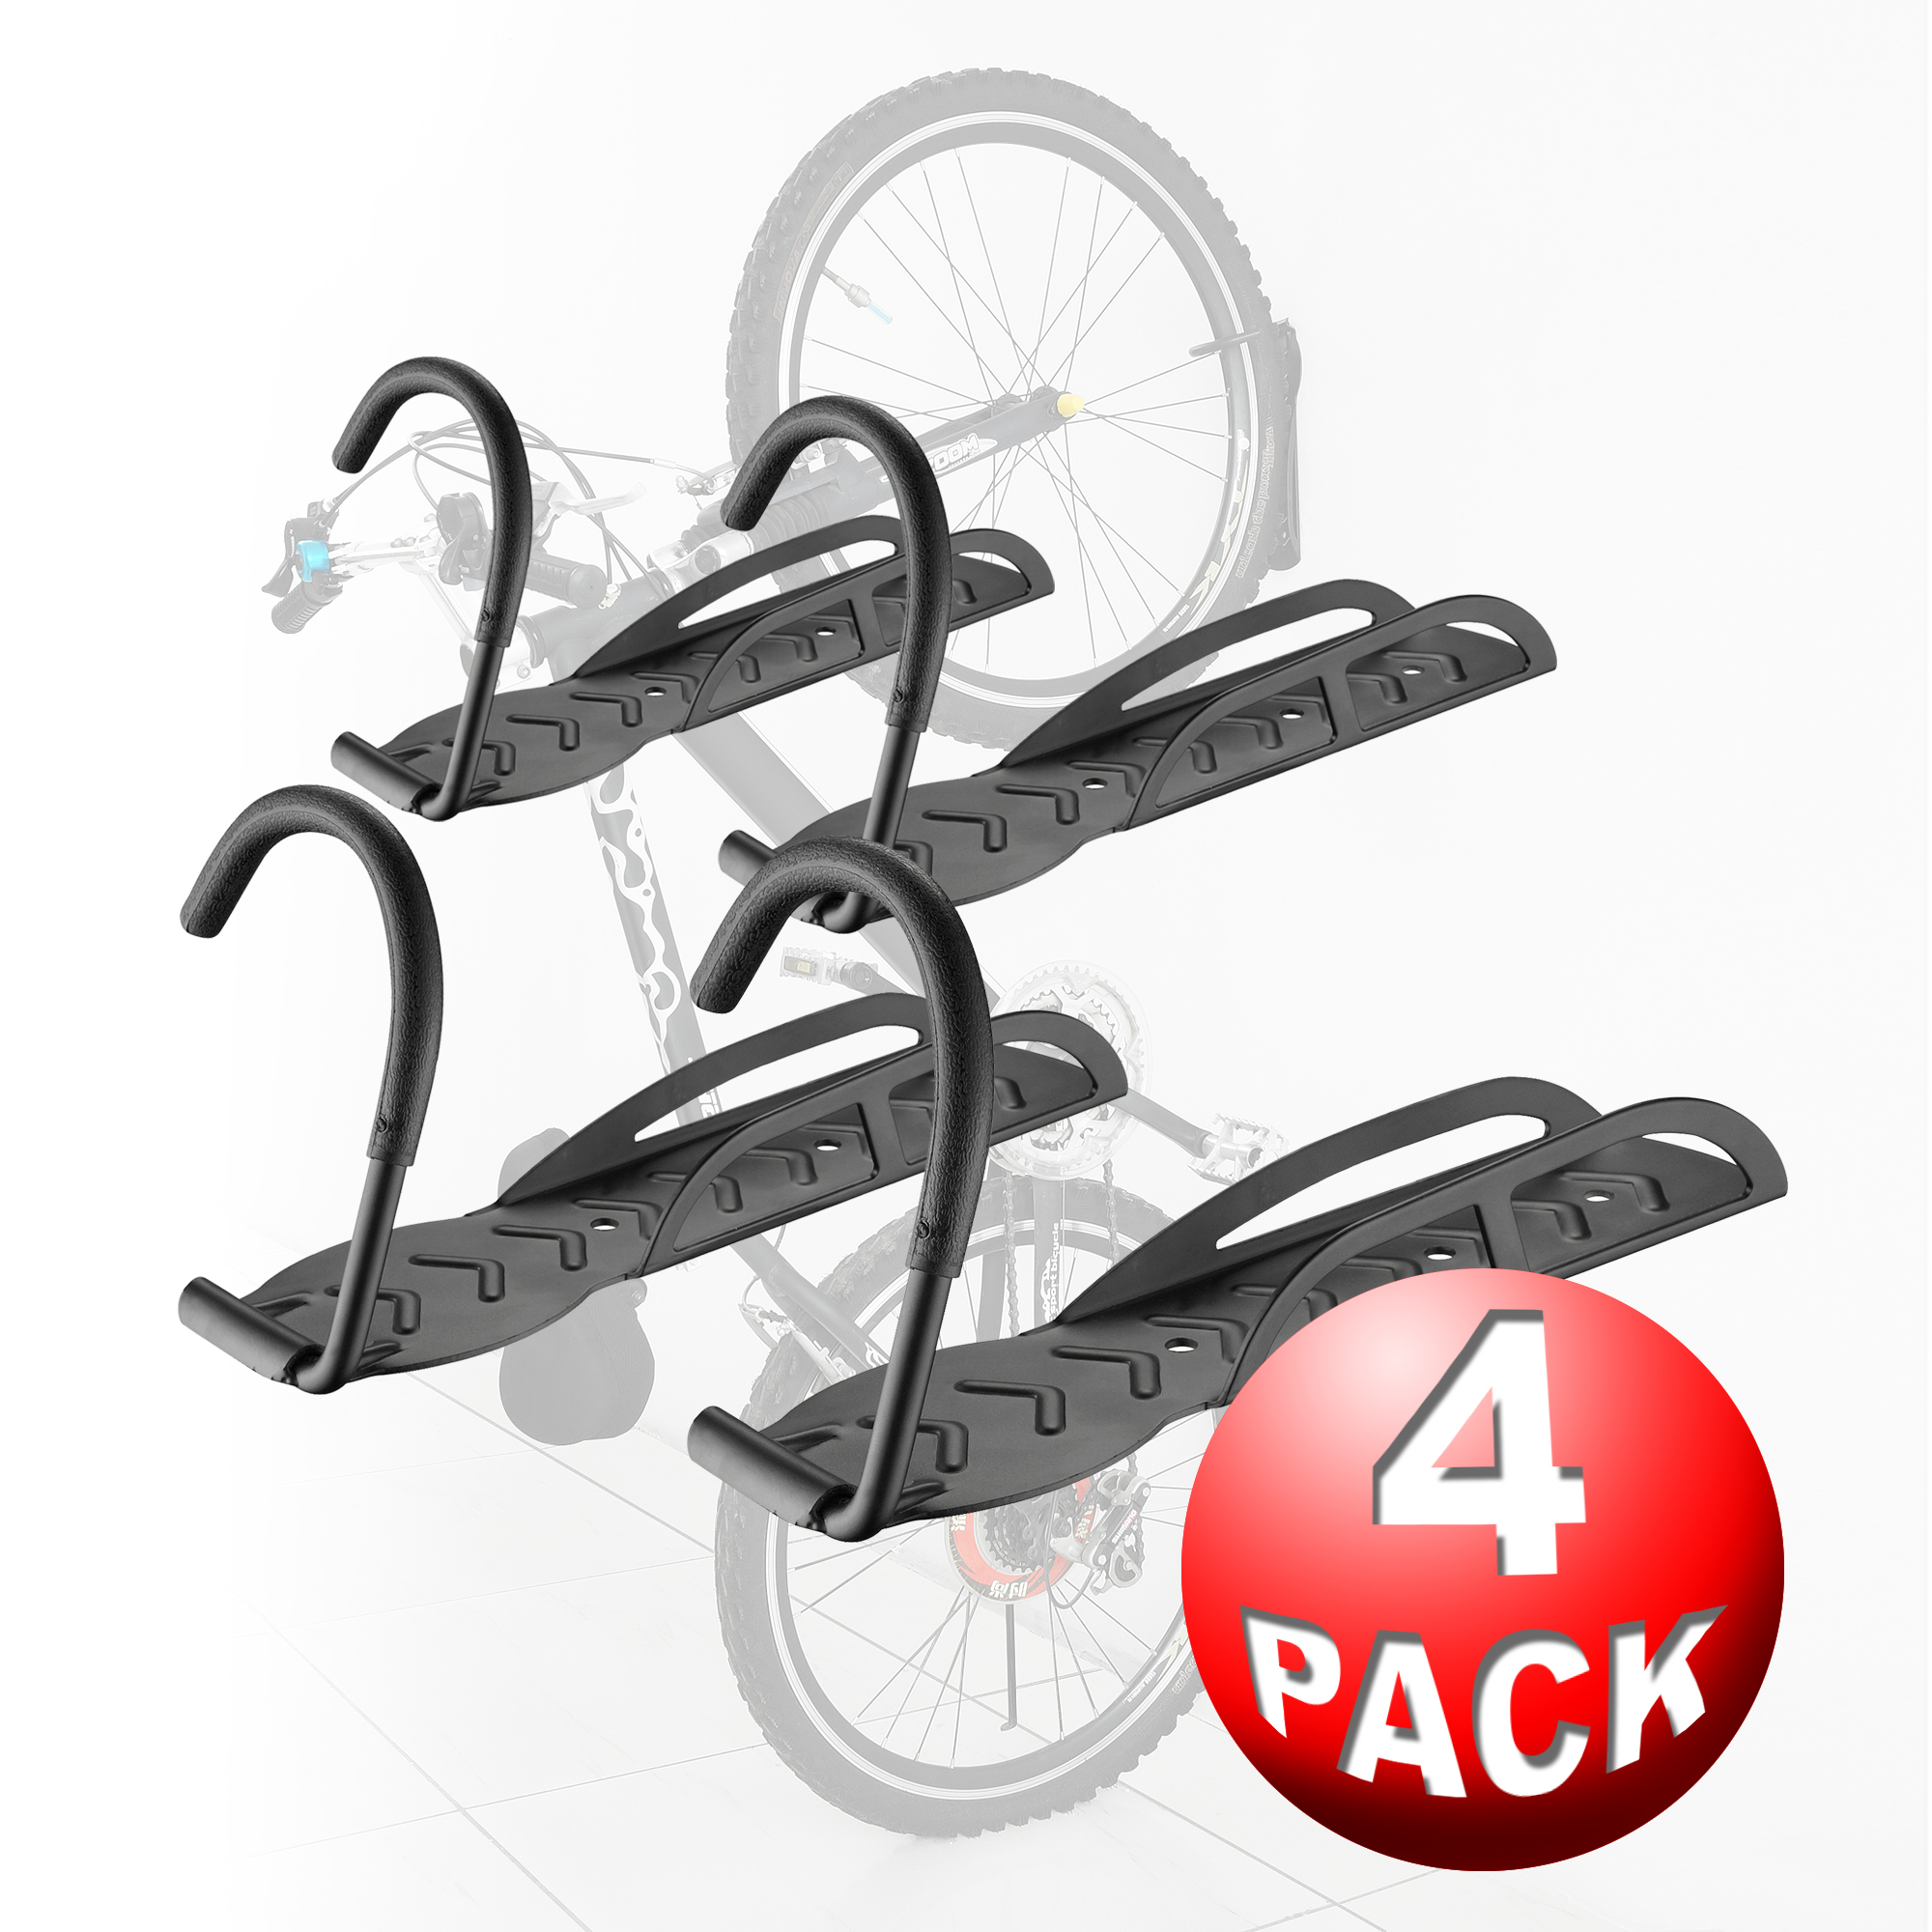 Bike Lane 4 Pack Bicycle Wall Hanger Bike Storage System For Garage or Shed by